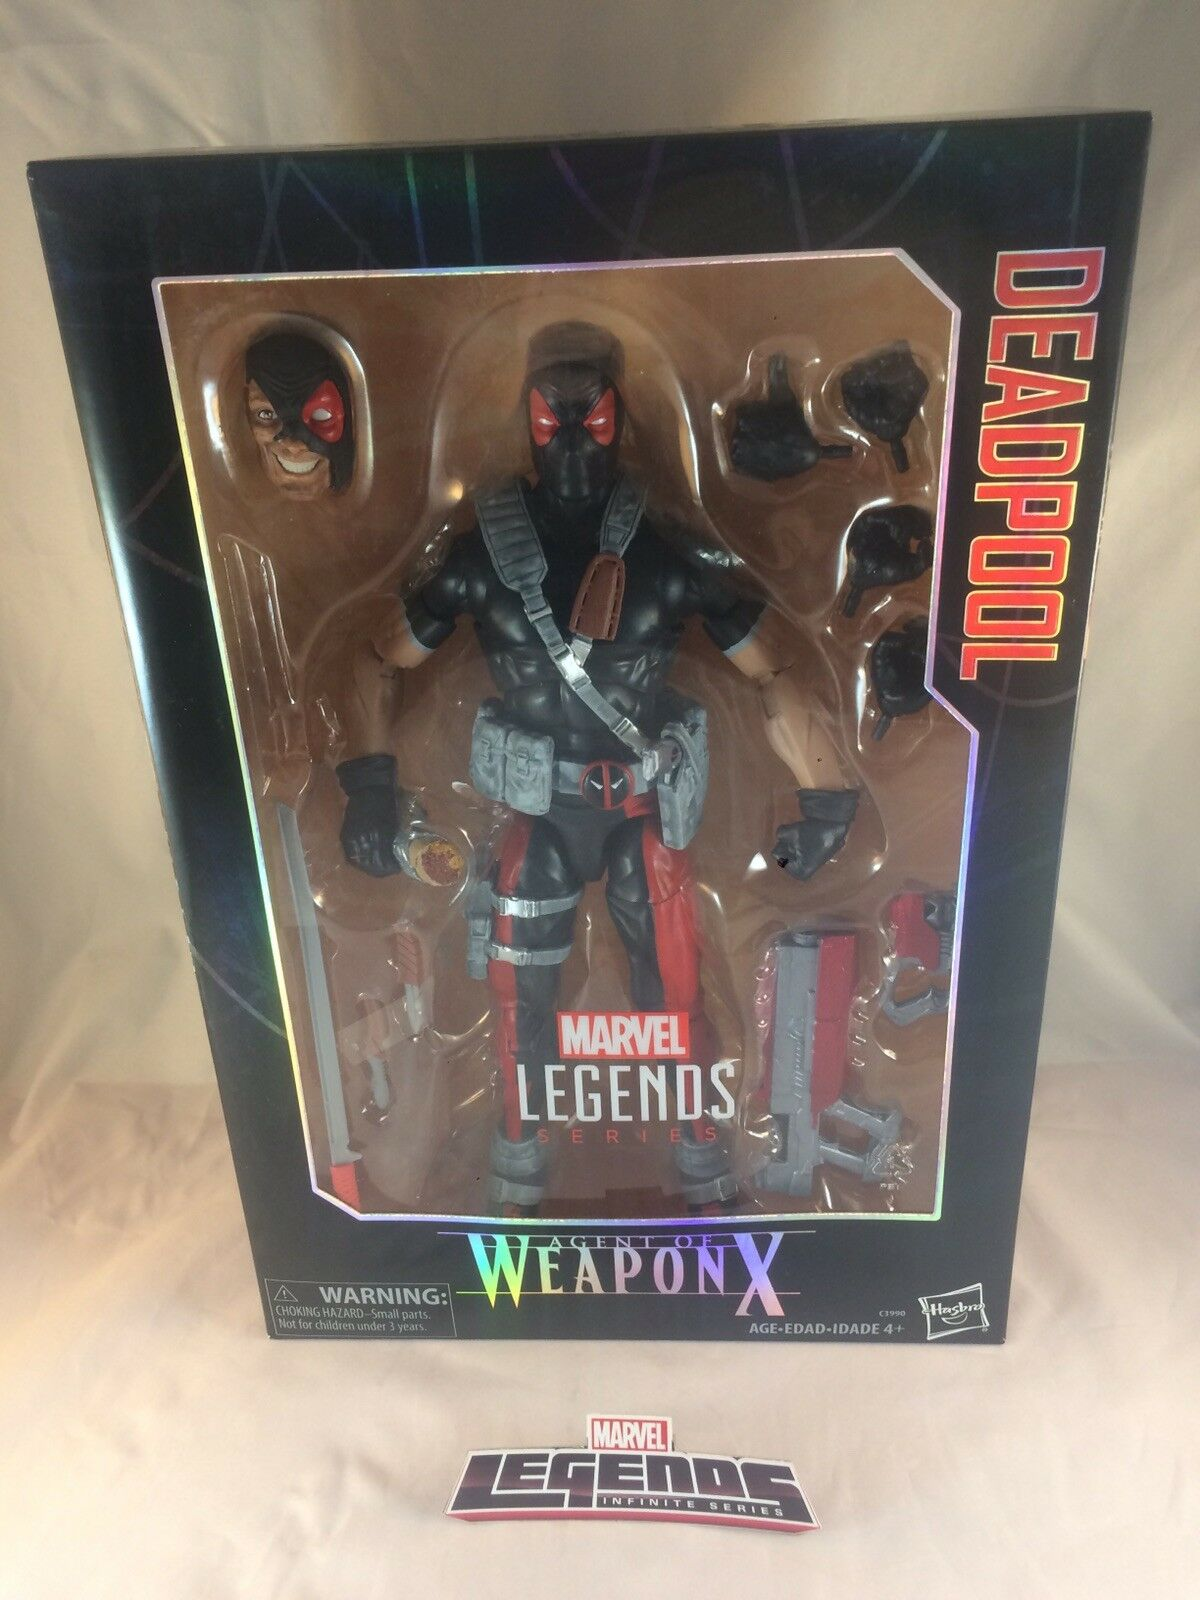 MARVEL LEGENDS HASBRO 2017 DEADPOOL WEAPON X 12  FIGURE UNOPENED NEW IN HAND